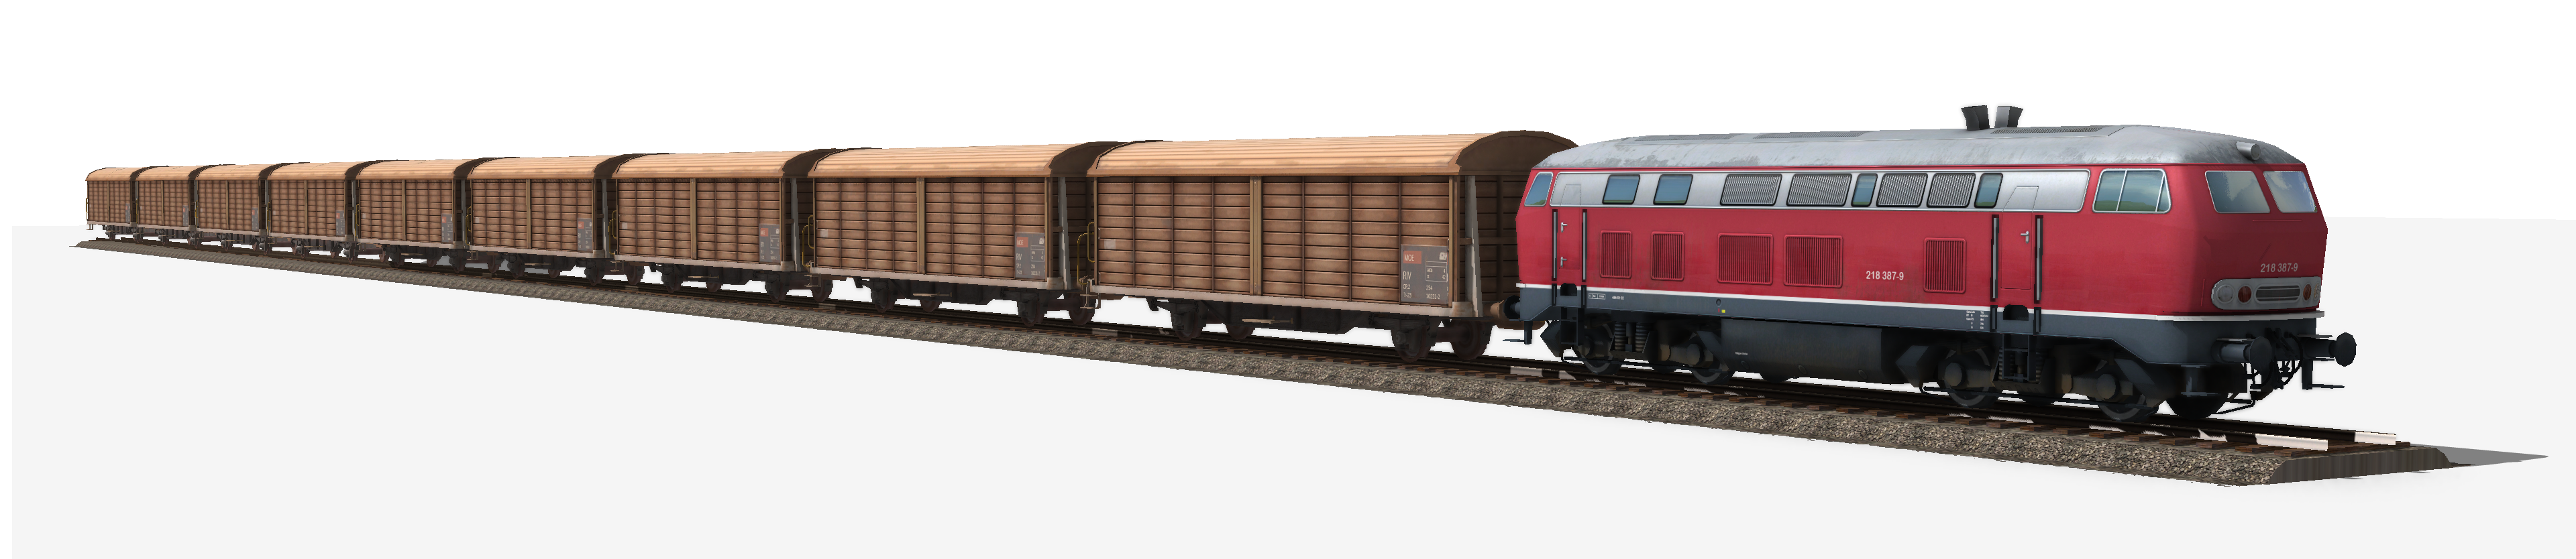 Train car png. Images free download